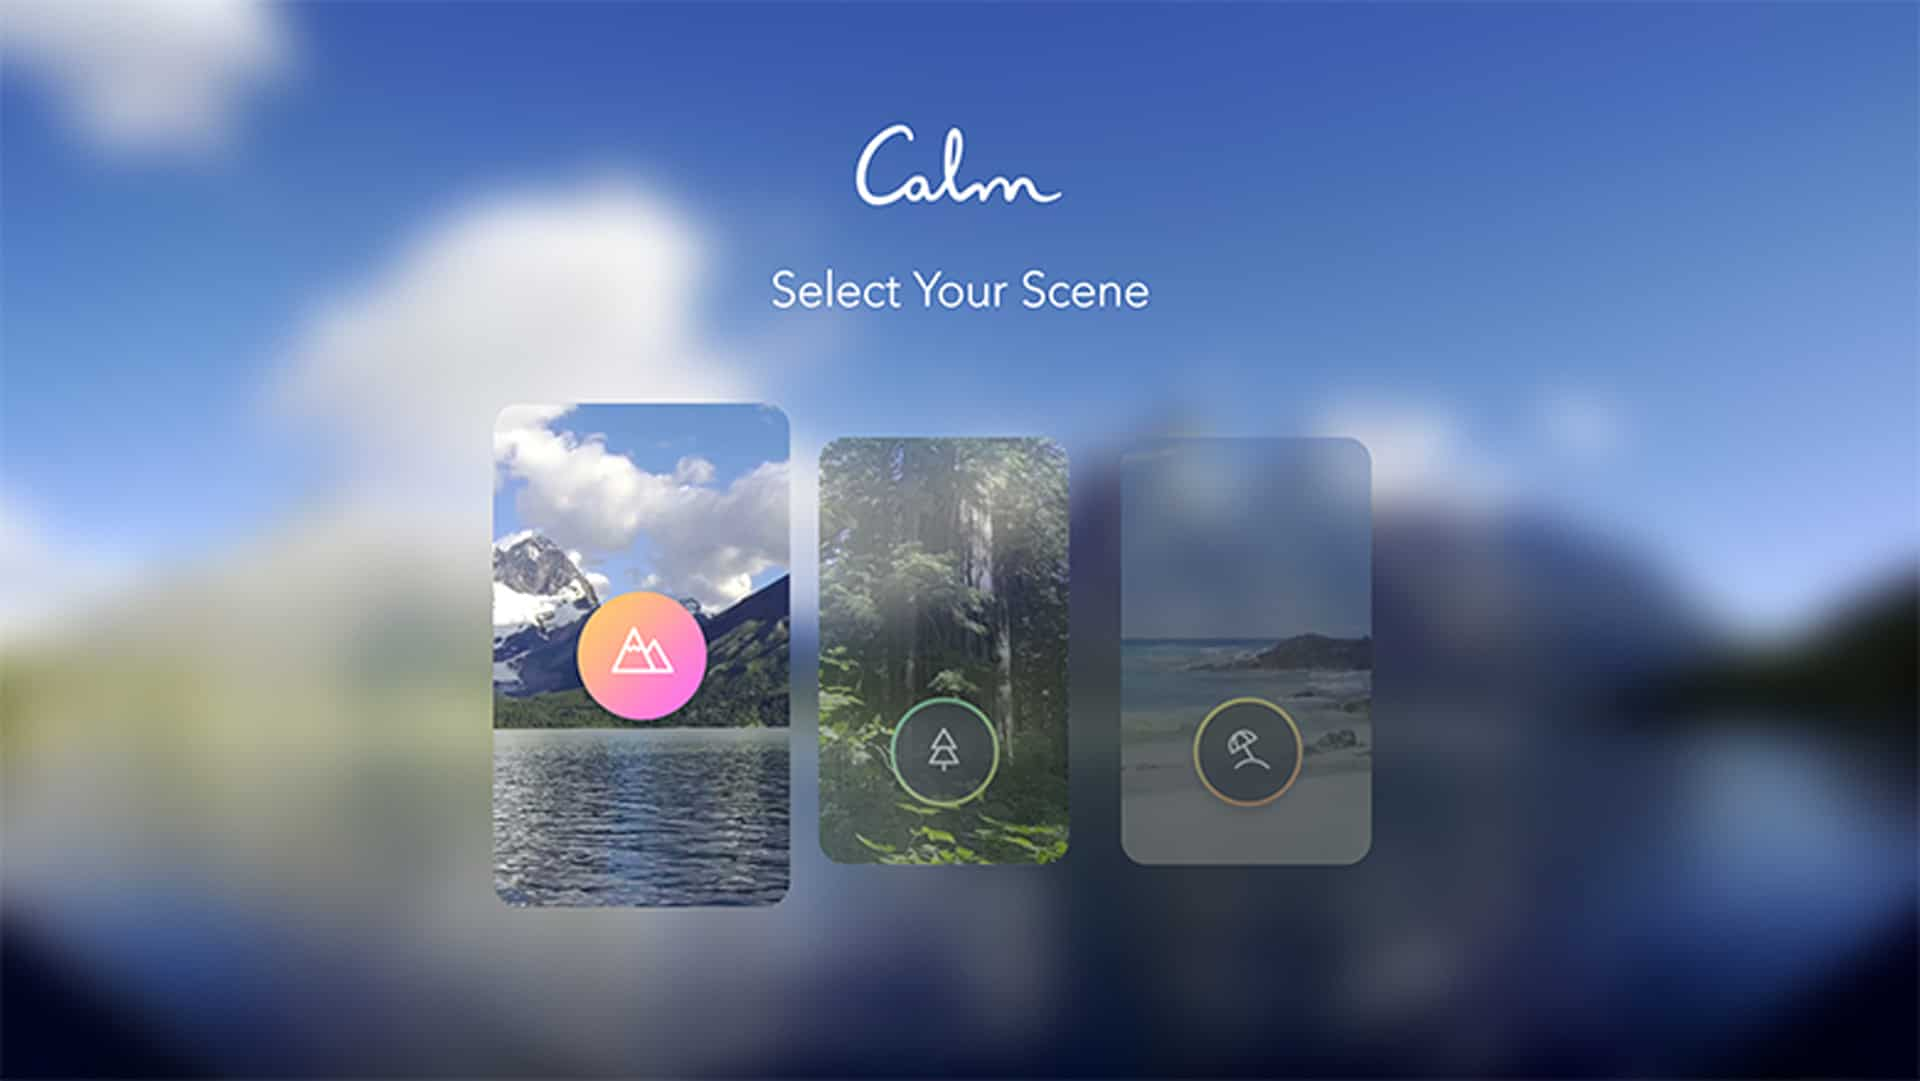 Teachers: Get the 'Calm' App ($59 Annual Fee) for FREE